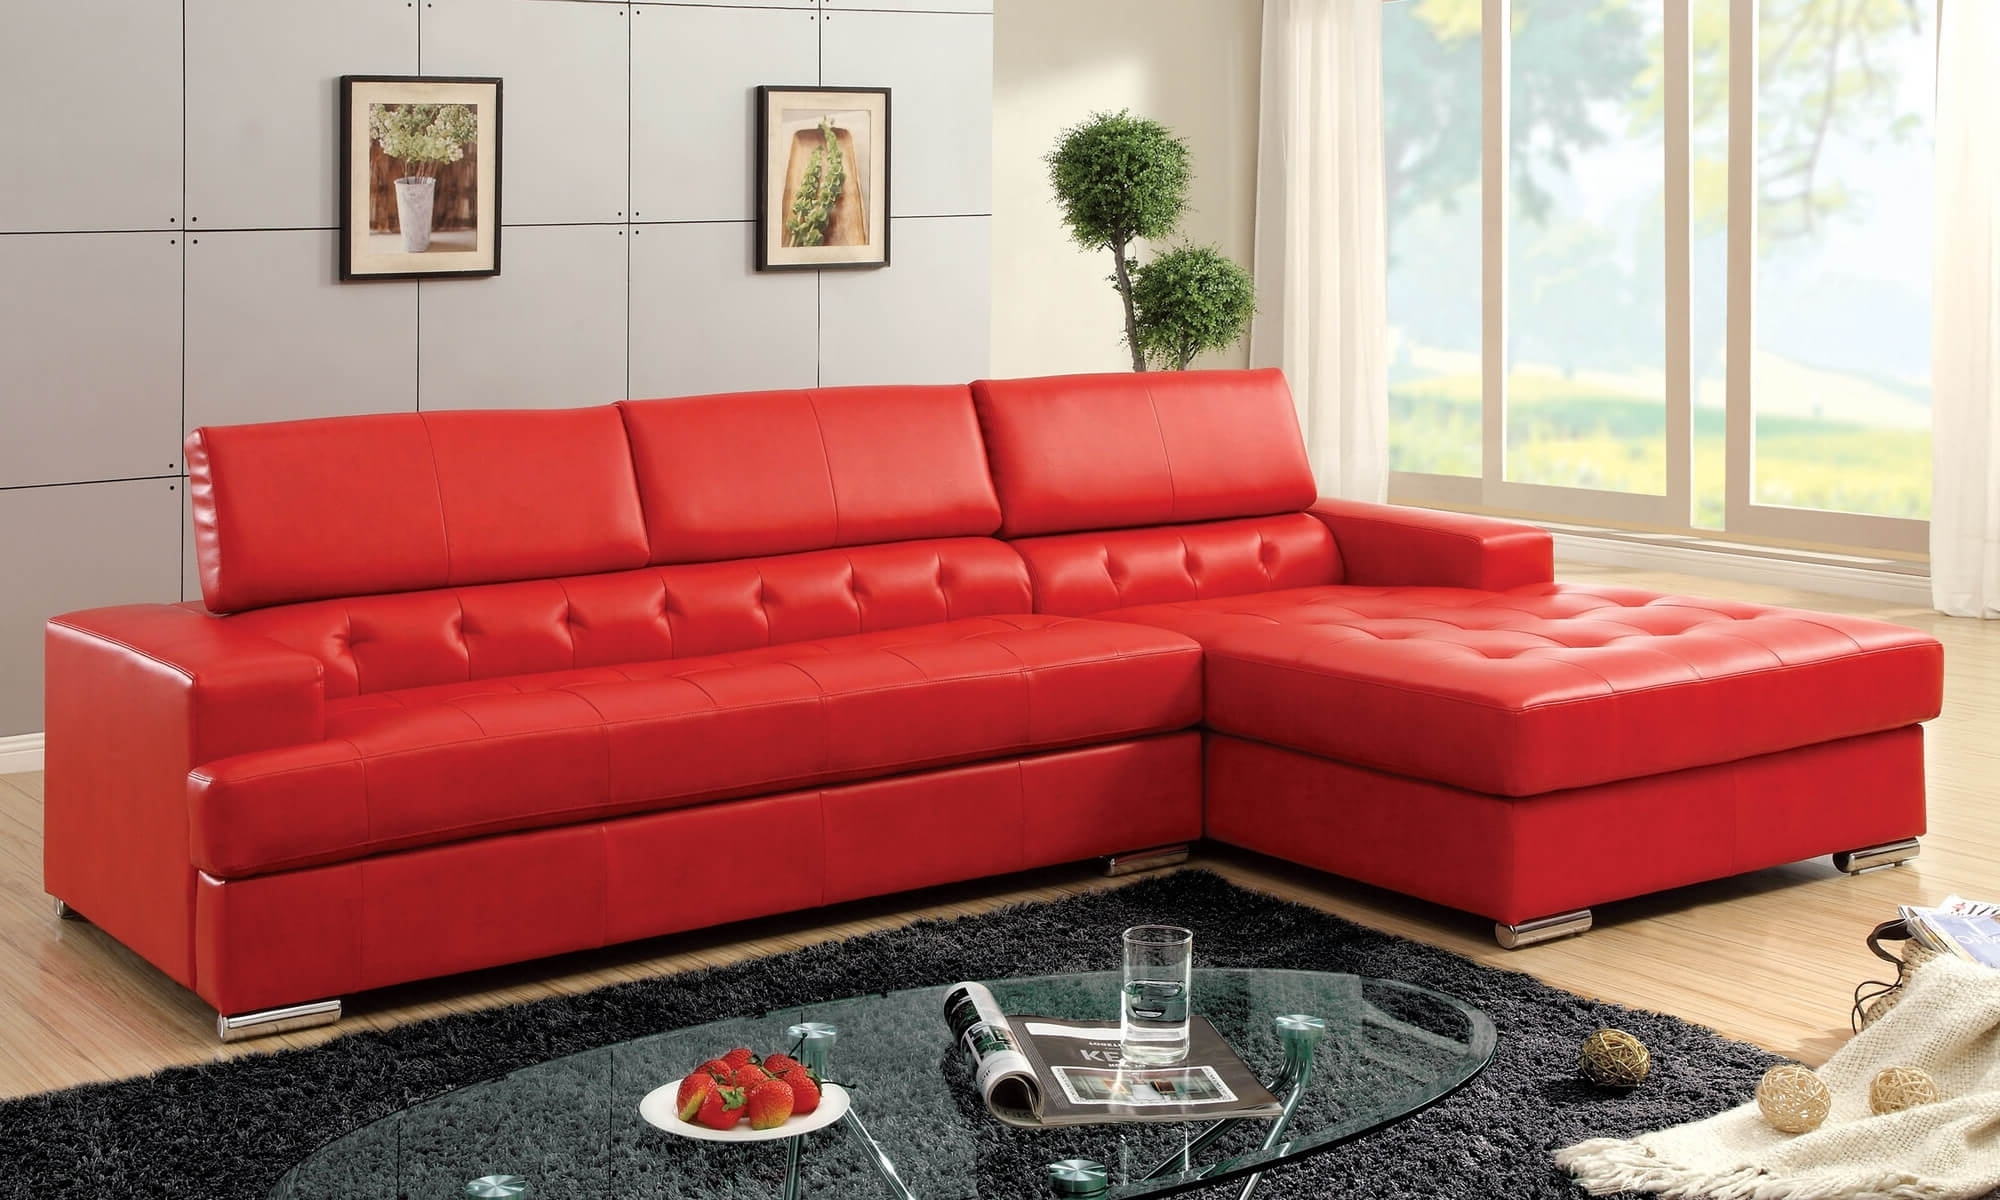 Crate And Barrel Leather Sectional Sofa • Leather Sofa Within Most Popular Red Faux Leather Sectionals (View 7 of 20)